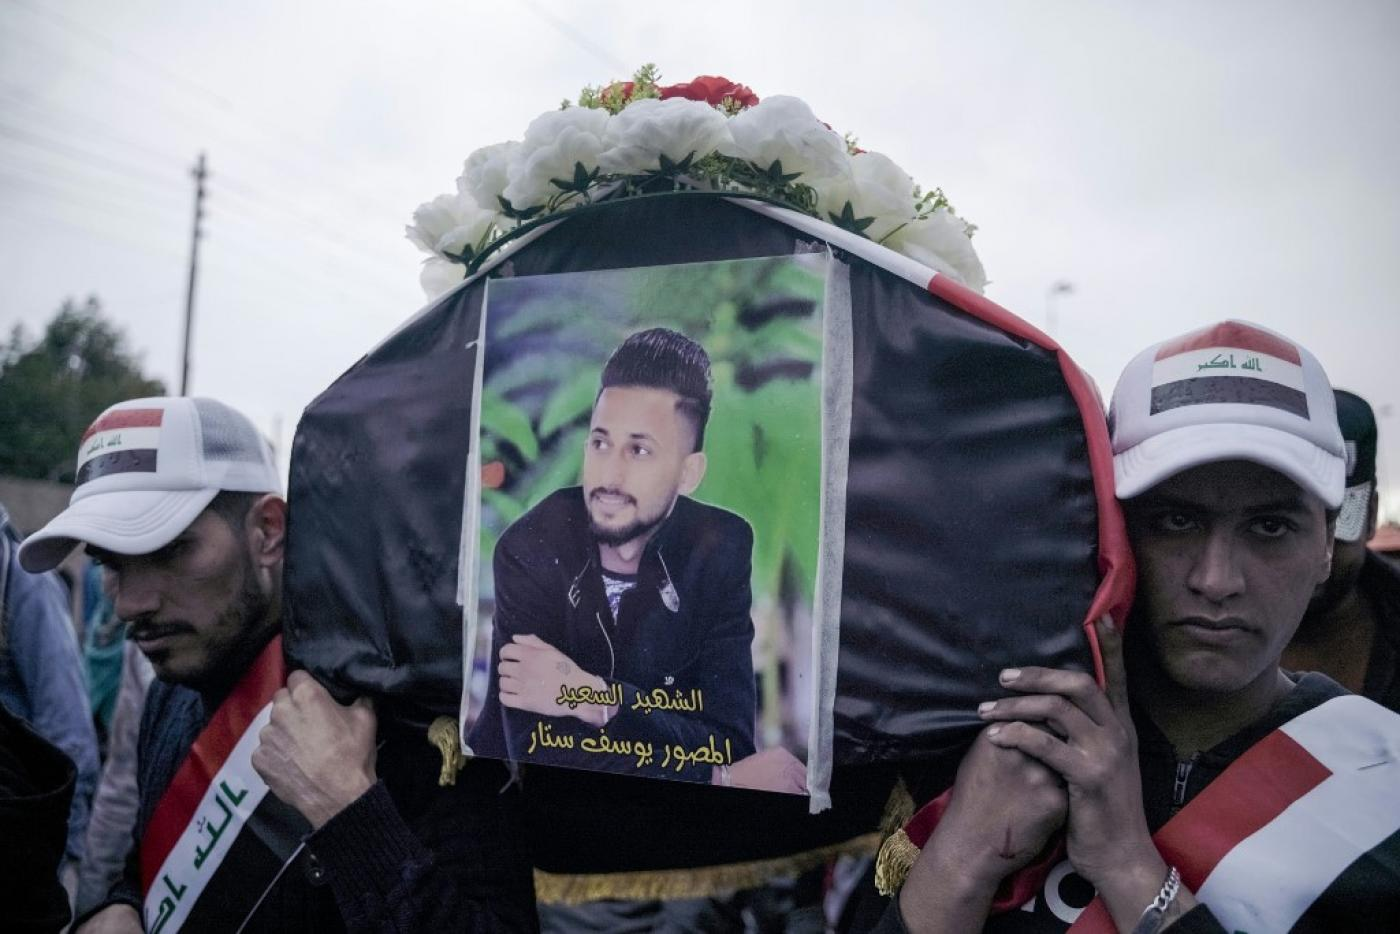 Mourners carry the coffin of Yussef Sattar, a journalist reportedly killed while covering anti-government protests in Iraq in January 2020.